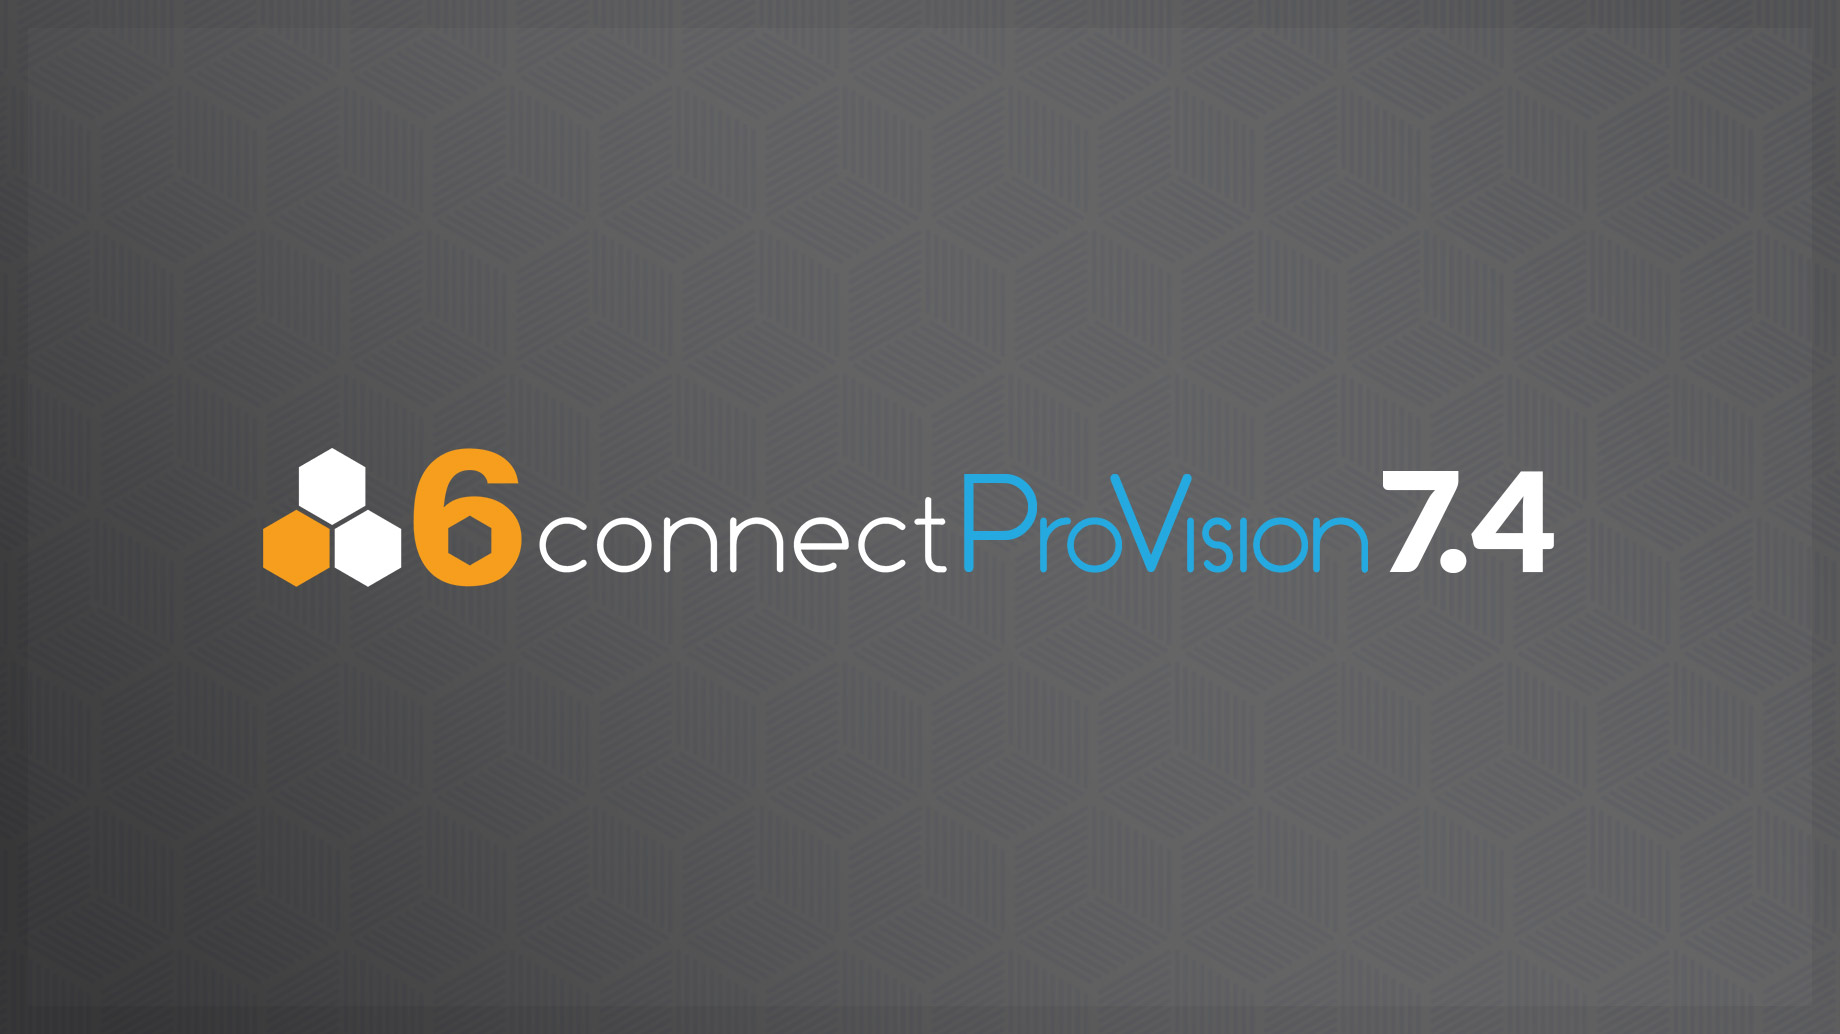 ProVision 7.4 is Almost Here!